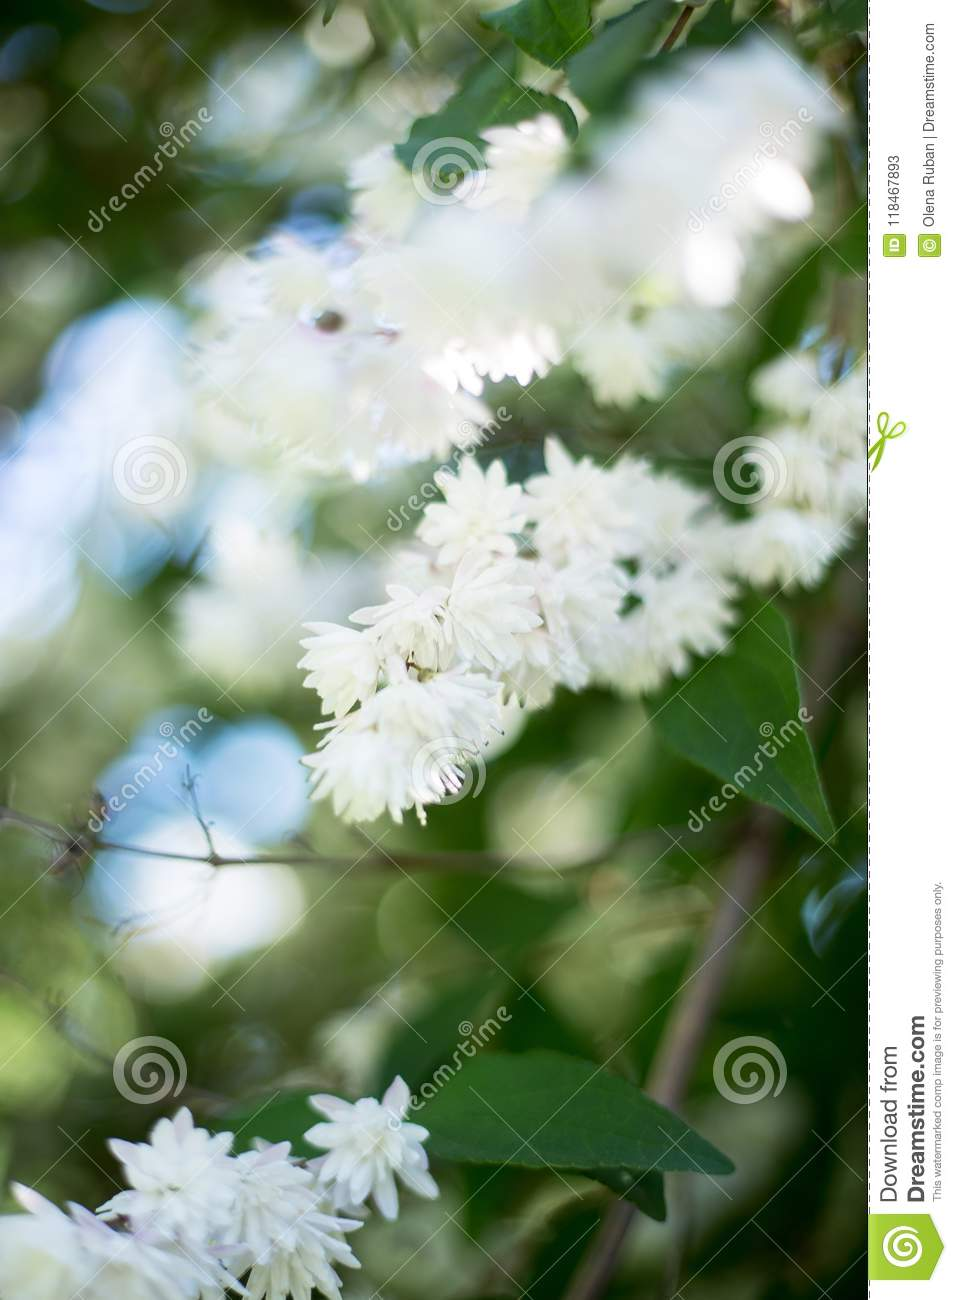 Unusual White Flowers Of Small Size Close Up Stock Image Image Of